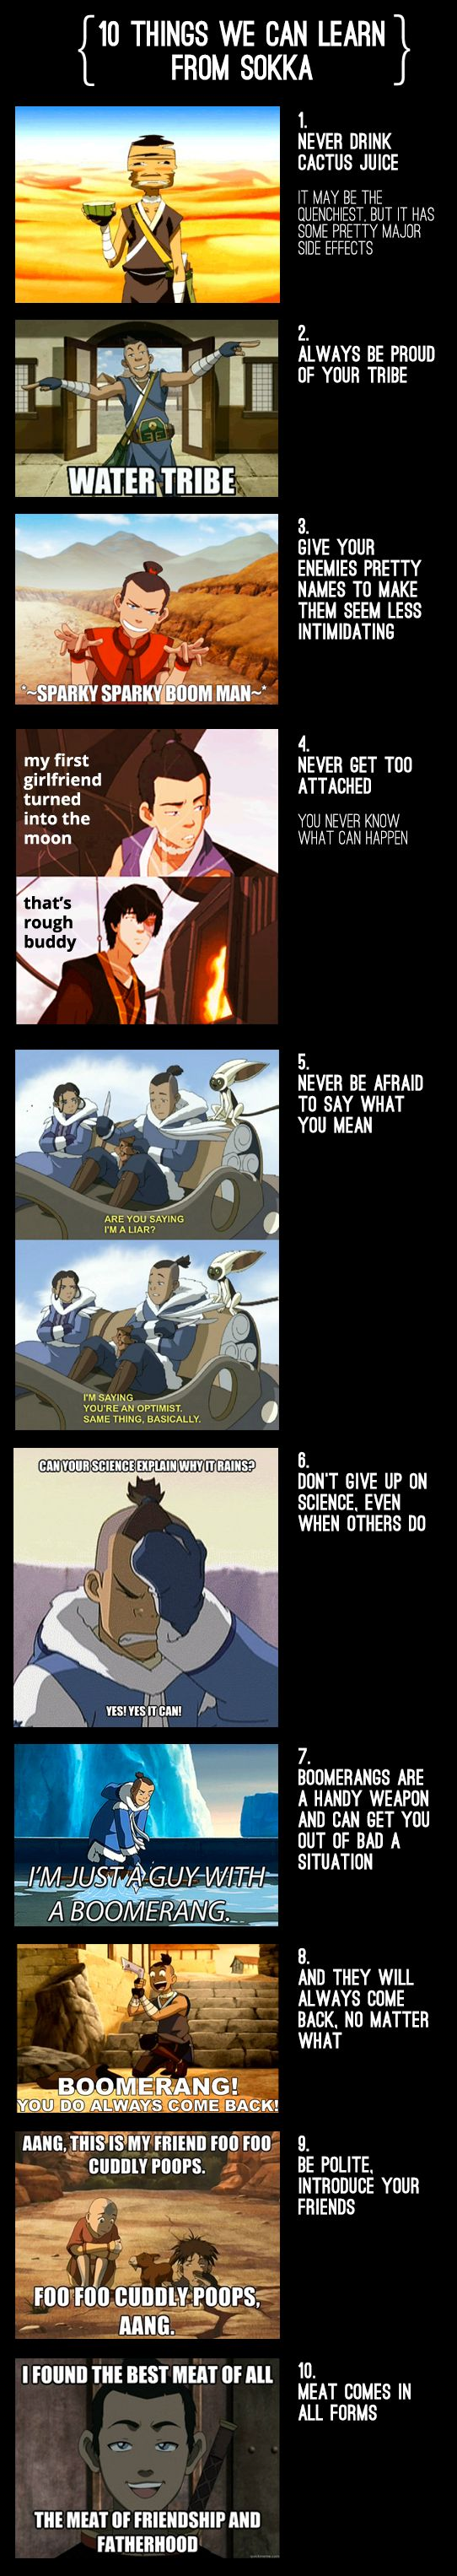 10 Things We Can Learn From Sokka - LOVE HIM! lol WATER TRIBE!!